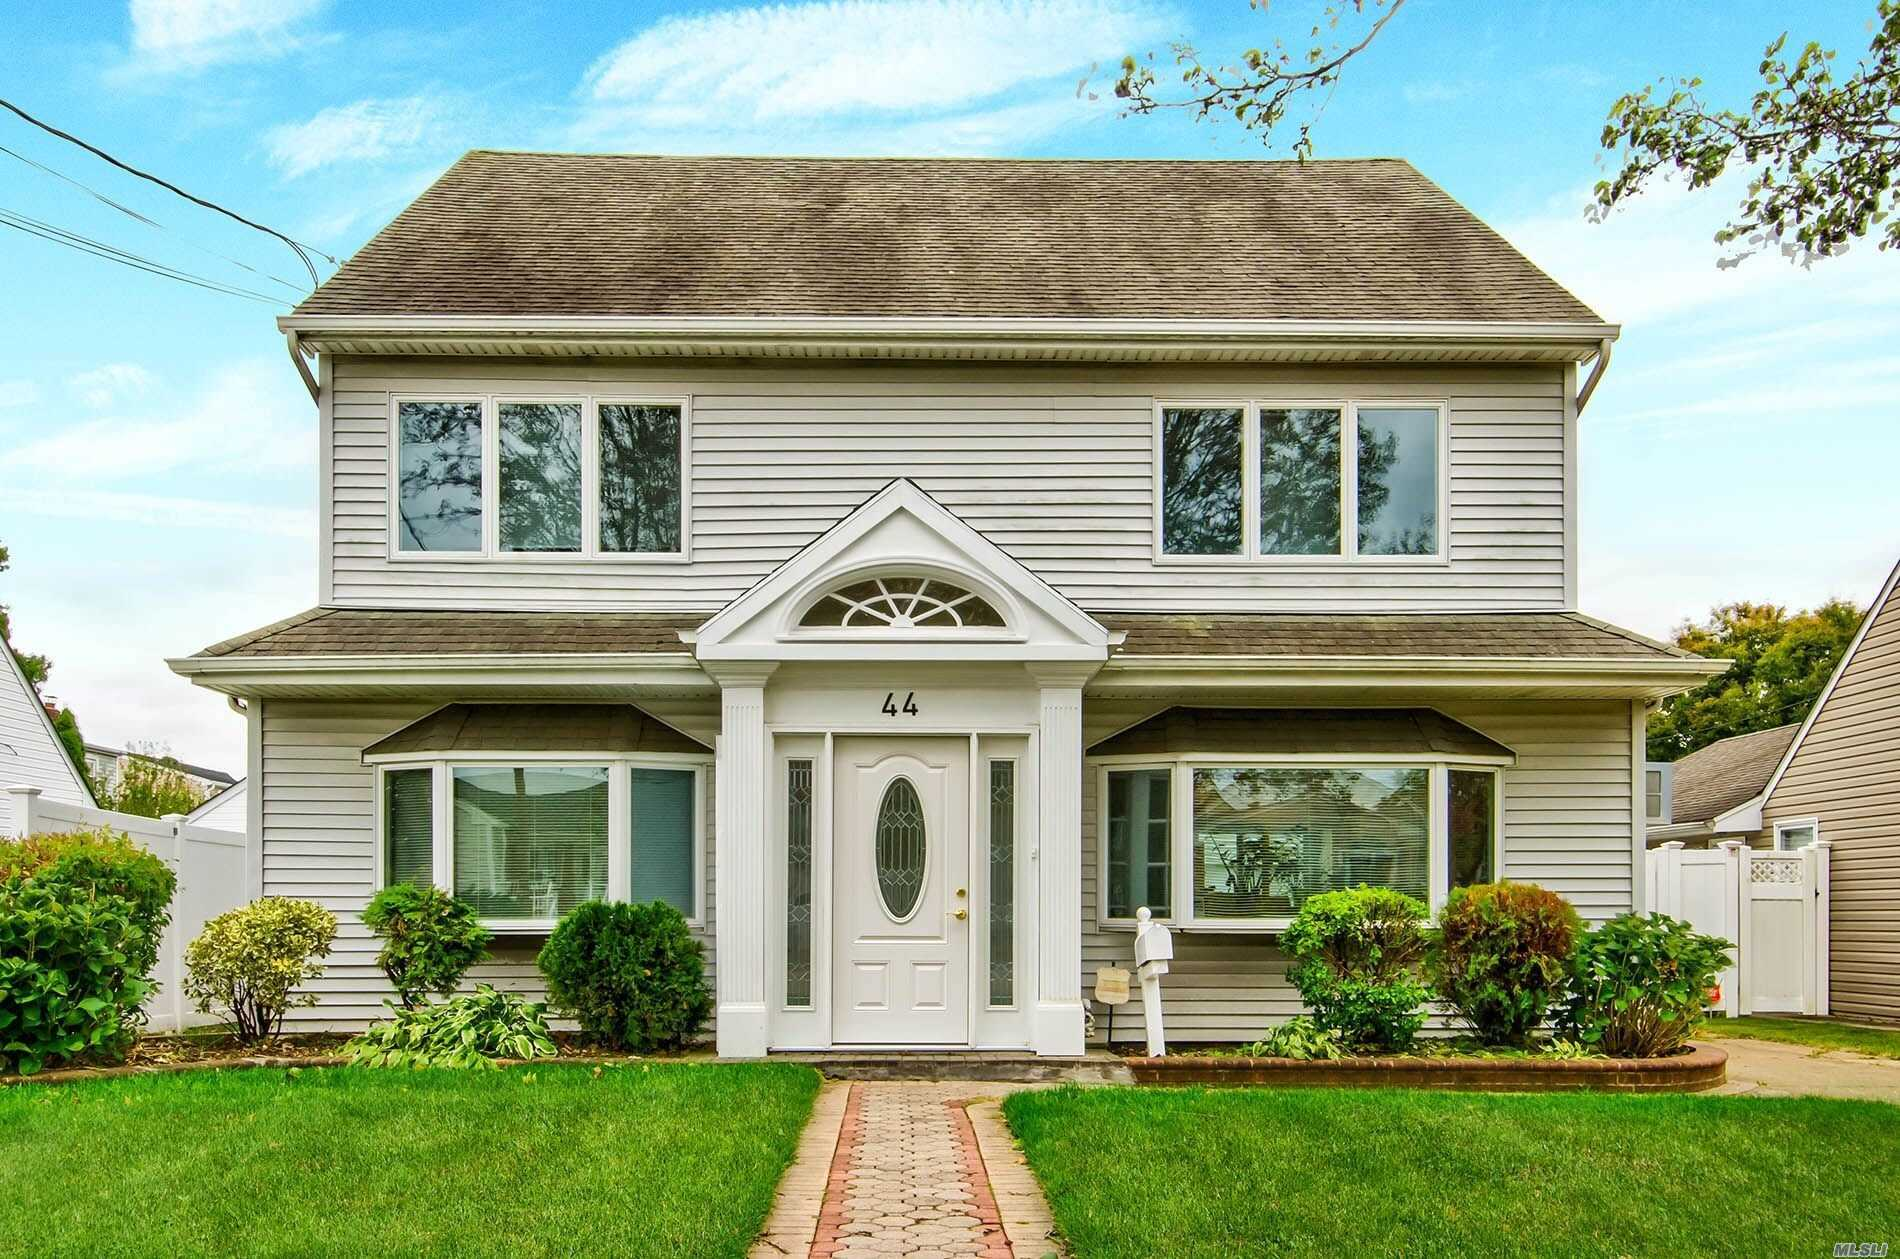 44 Chestnut St 11801 - One of Hicksville Homes for Sale